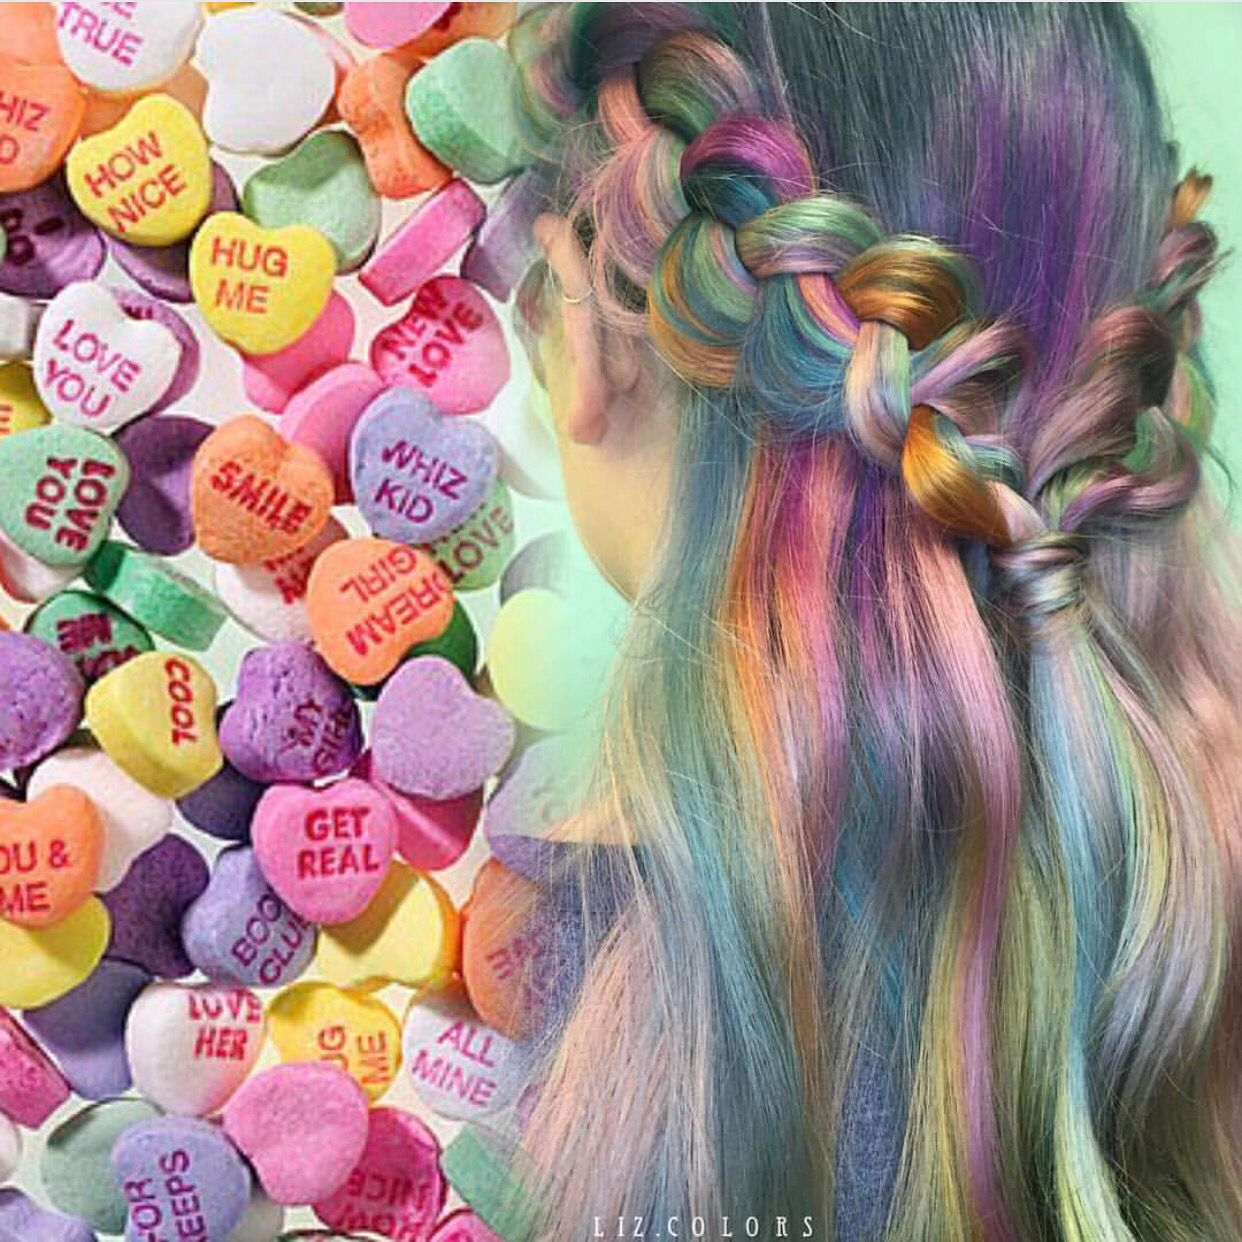 Inspired by candy hearts beautiful rainbow hair color design and